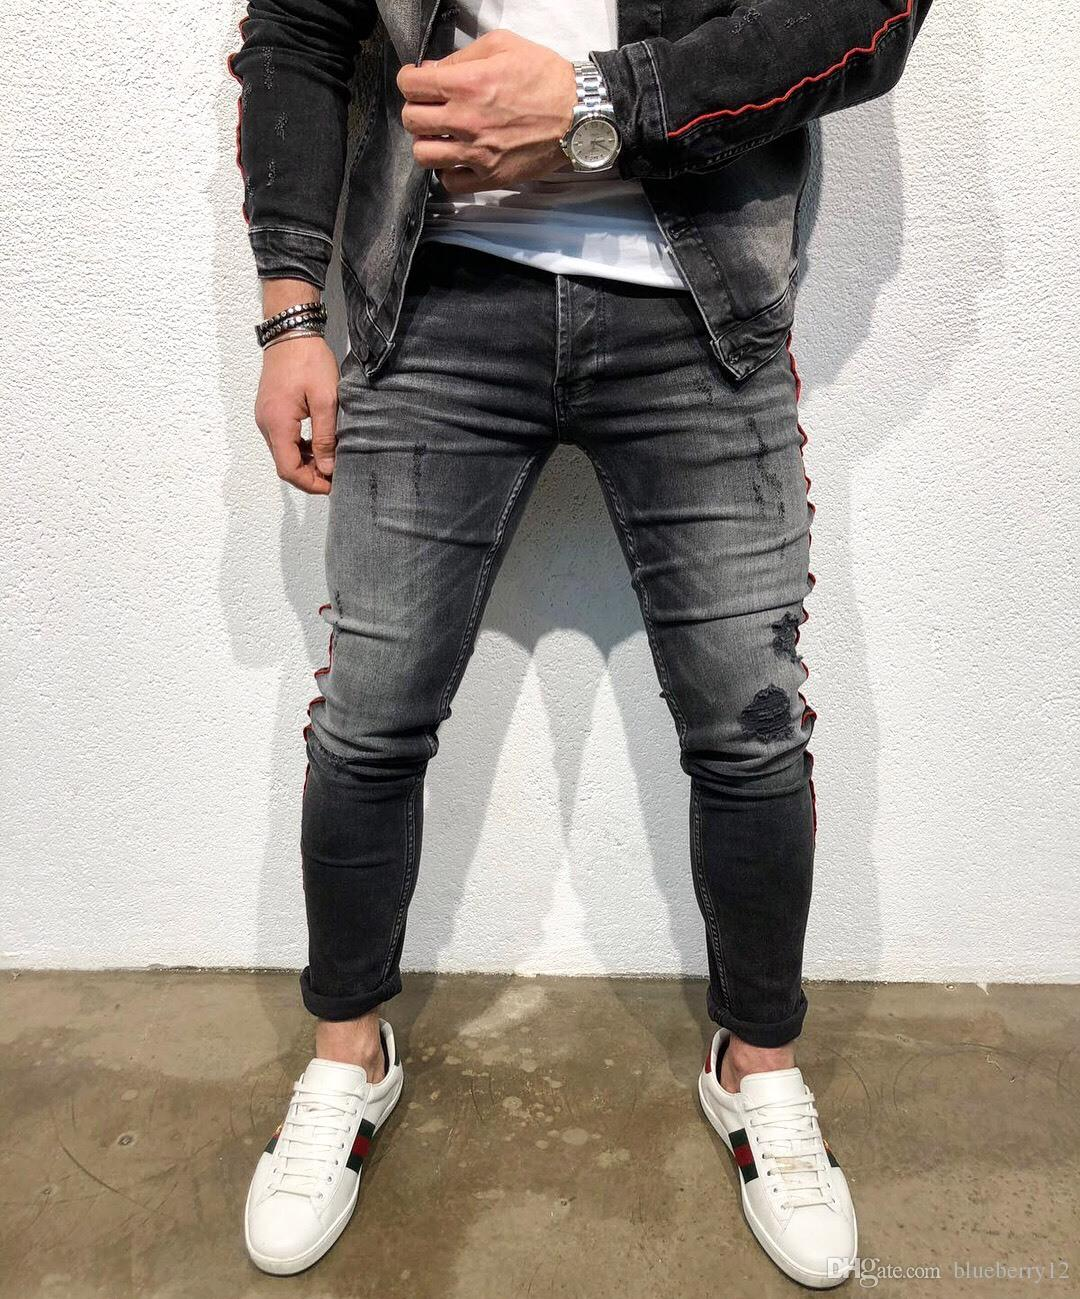 60177ab0 2019 High Street Mens Washed Jeans New Pencil Denim Pants For Male Ripped  Motor Pants From Blueberry12, $39.6 | DHgate.Com